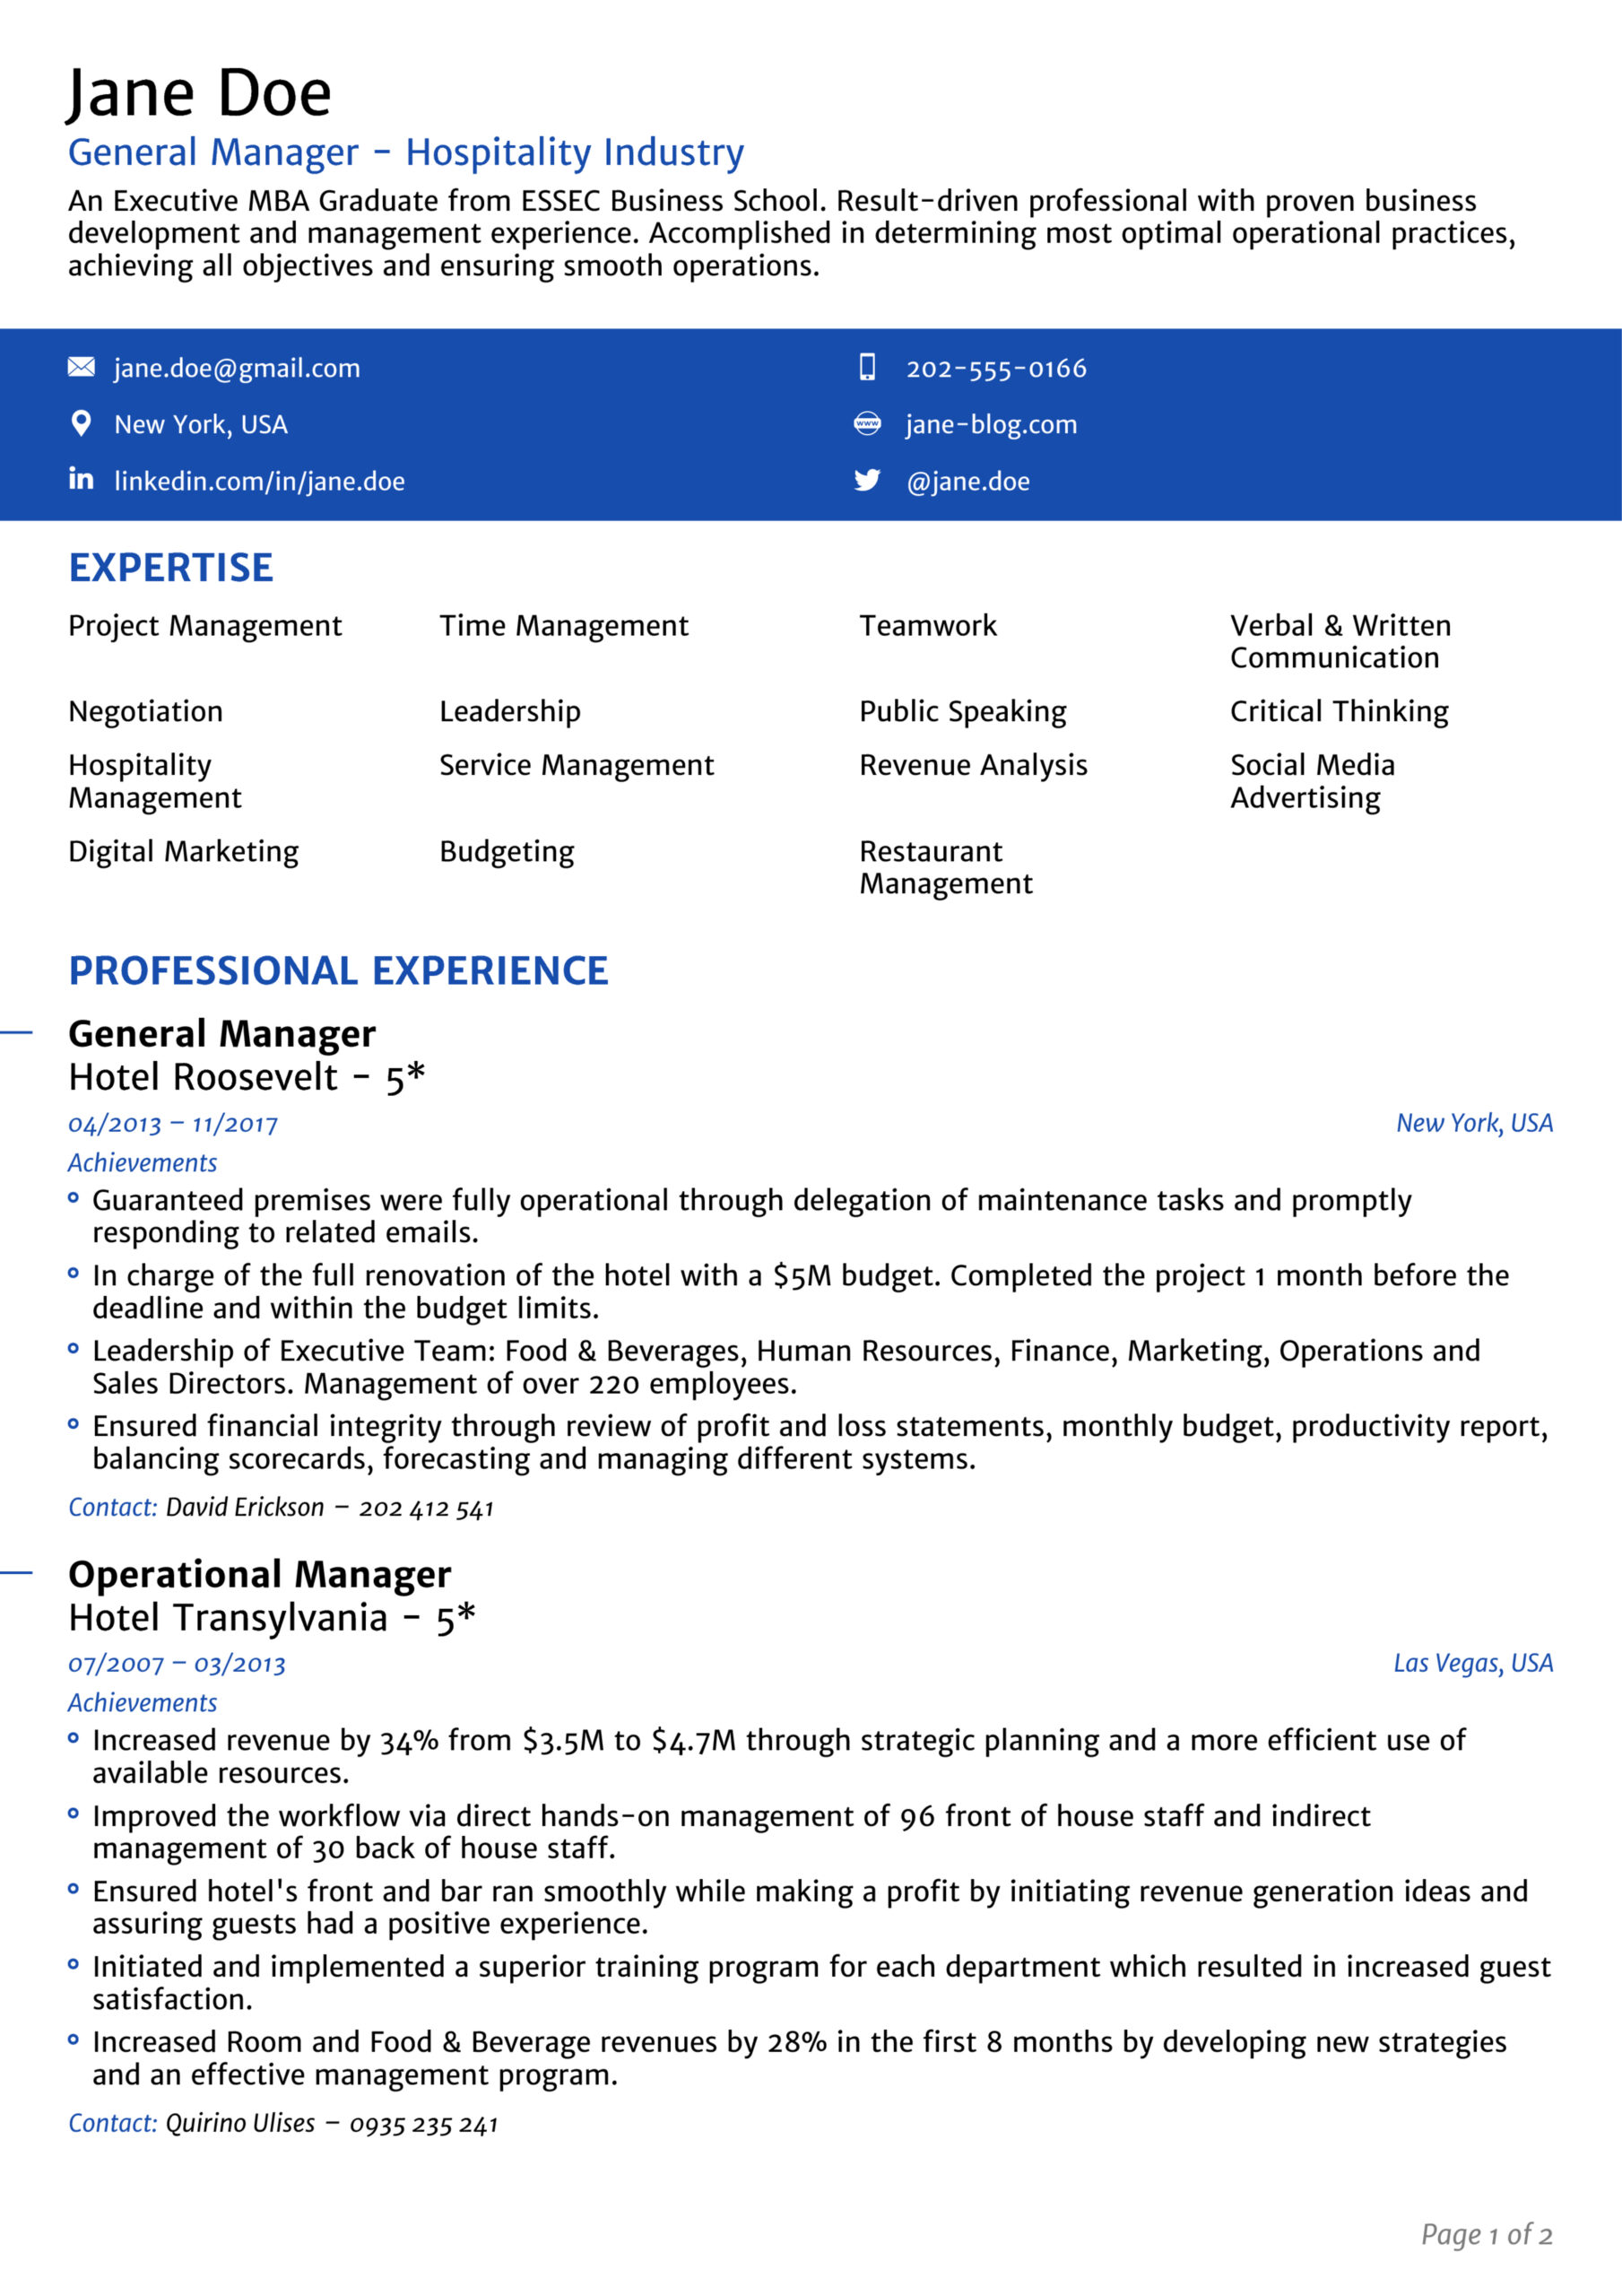 job titles examples for your resume search title experience in civil autocad casual work Resume Title Search Experience Resume